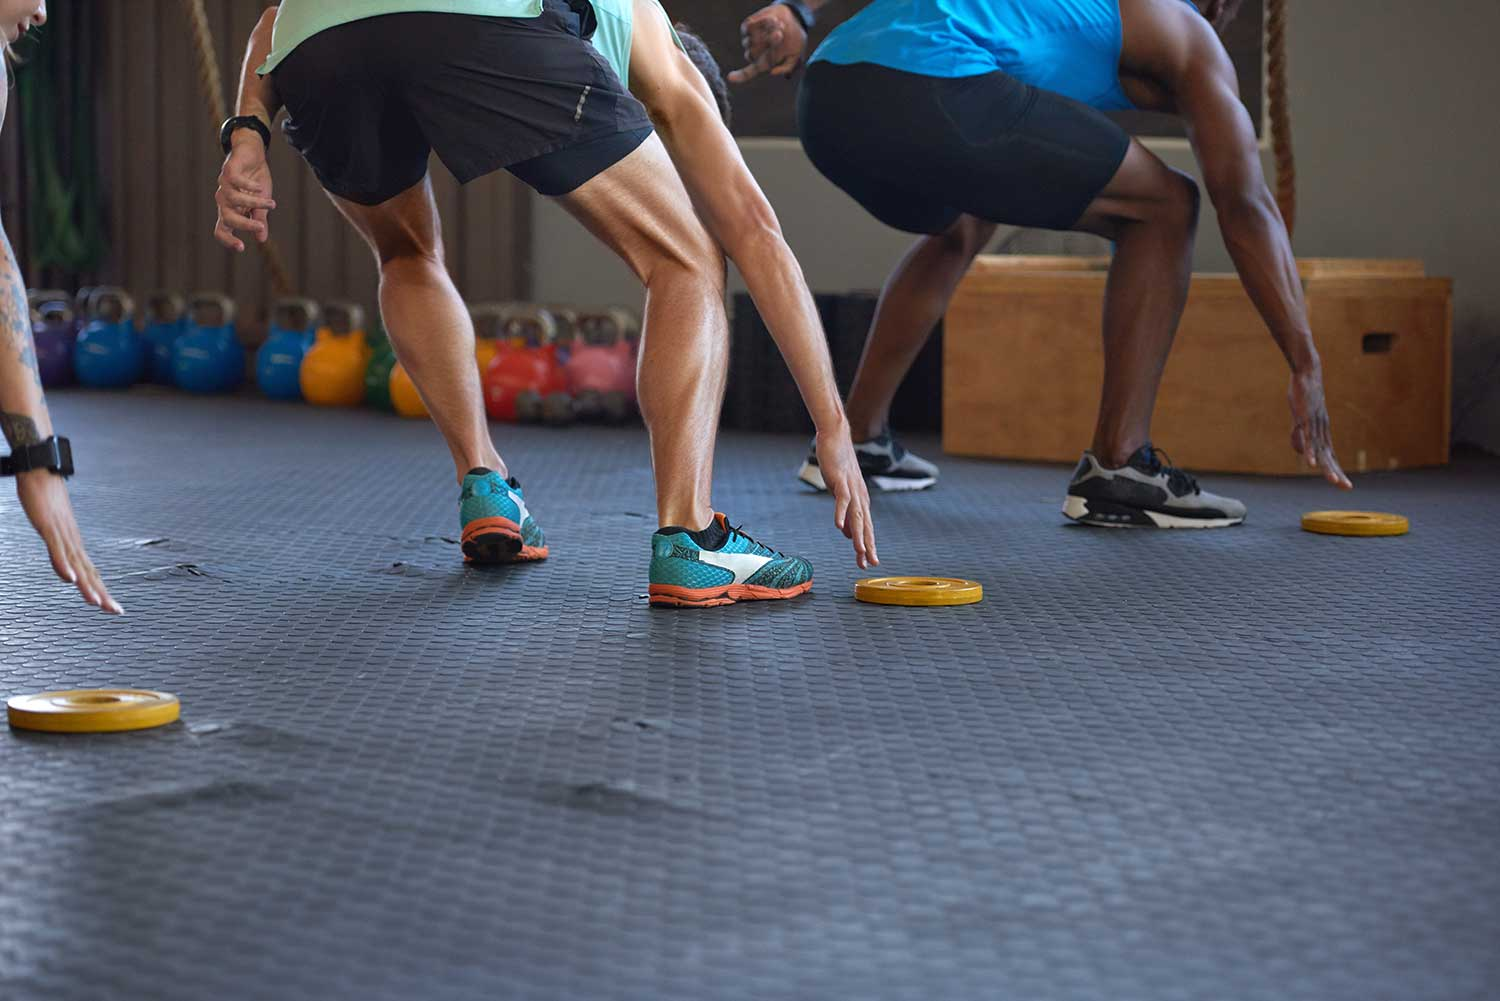 People performing HIIT training exercises